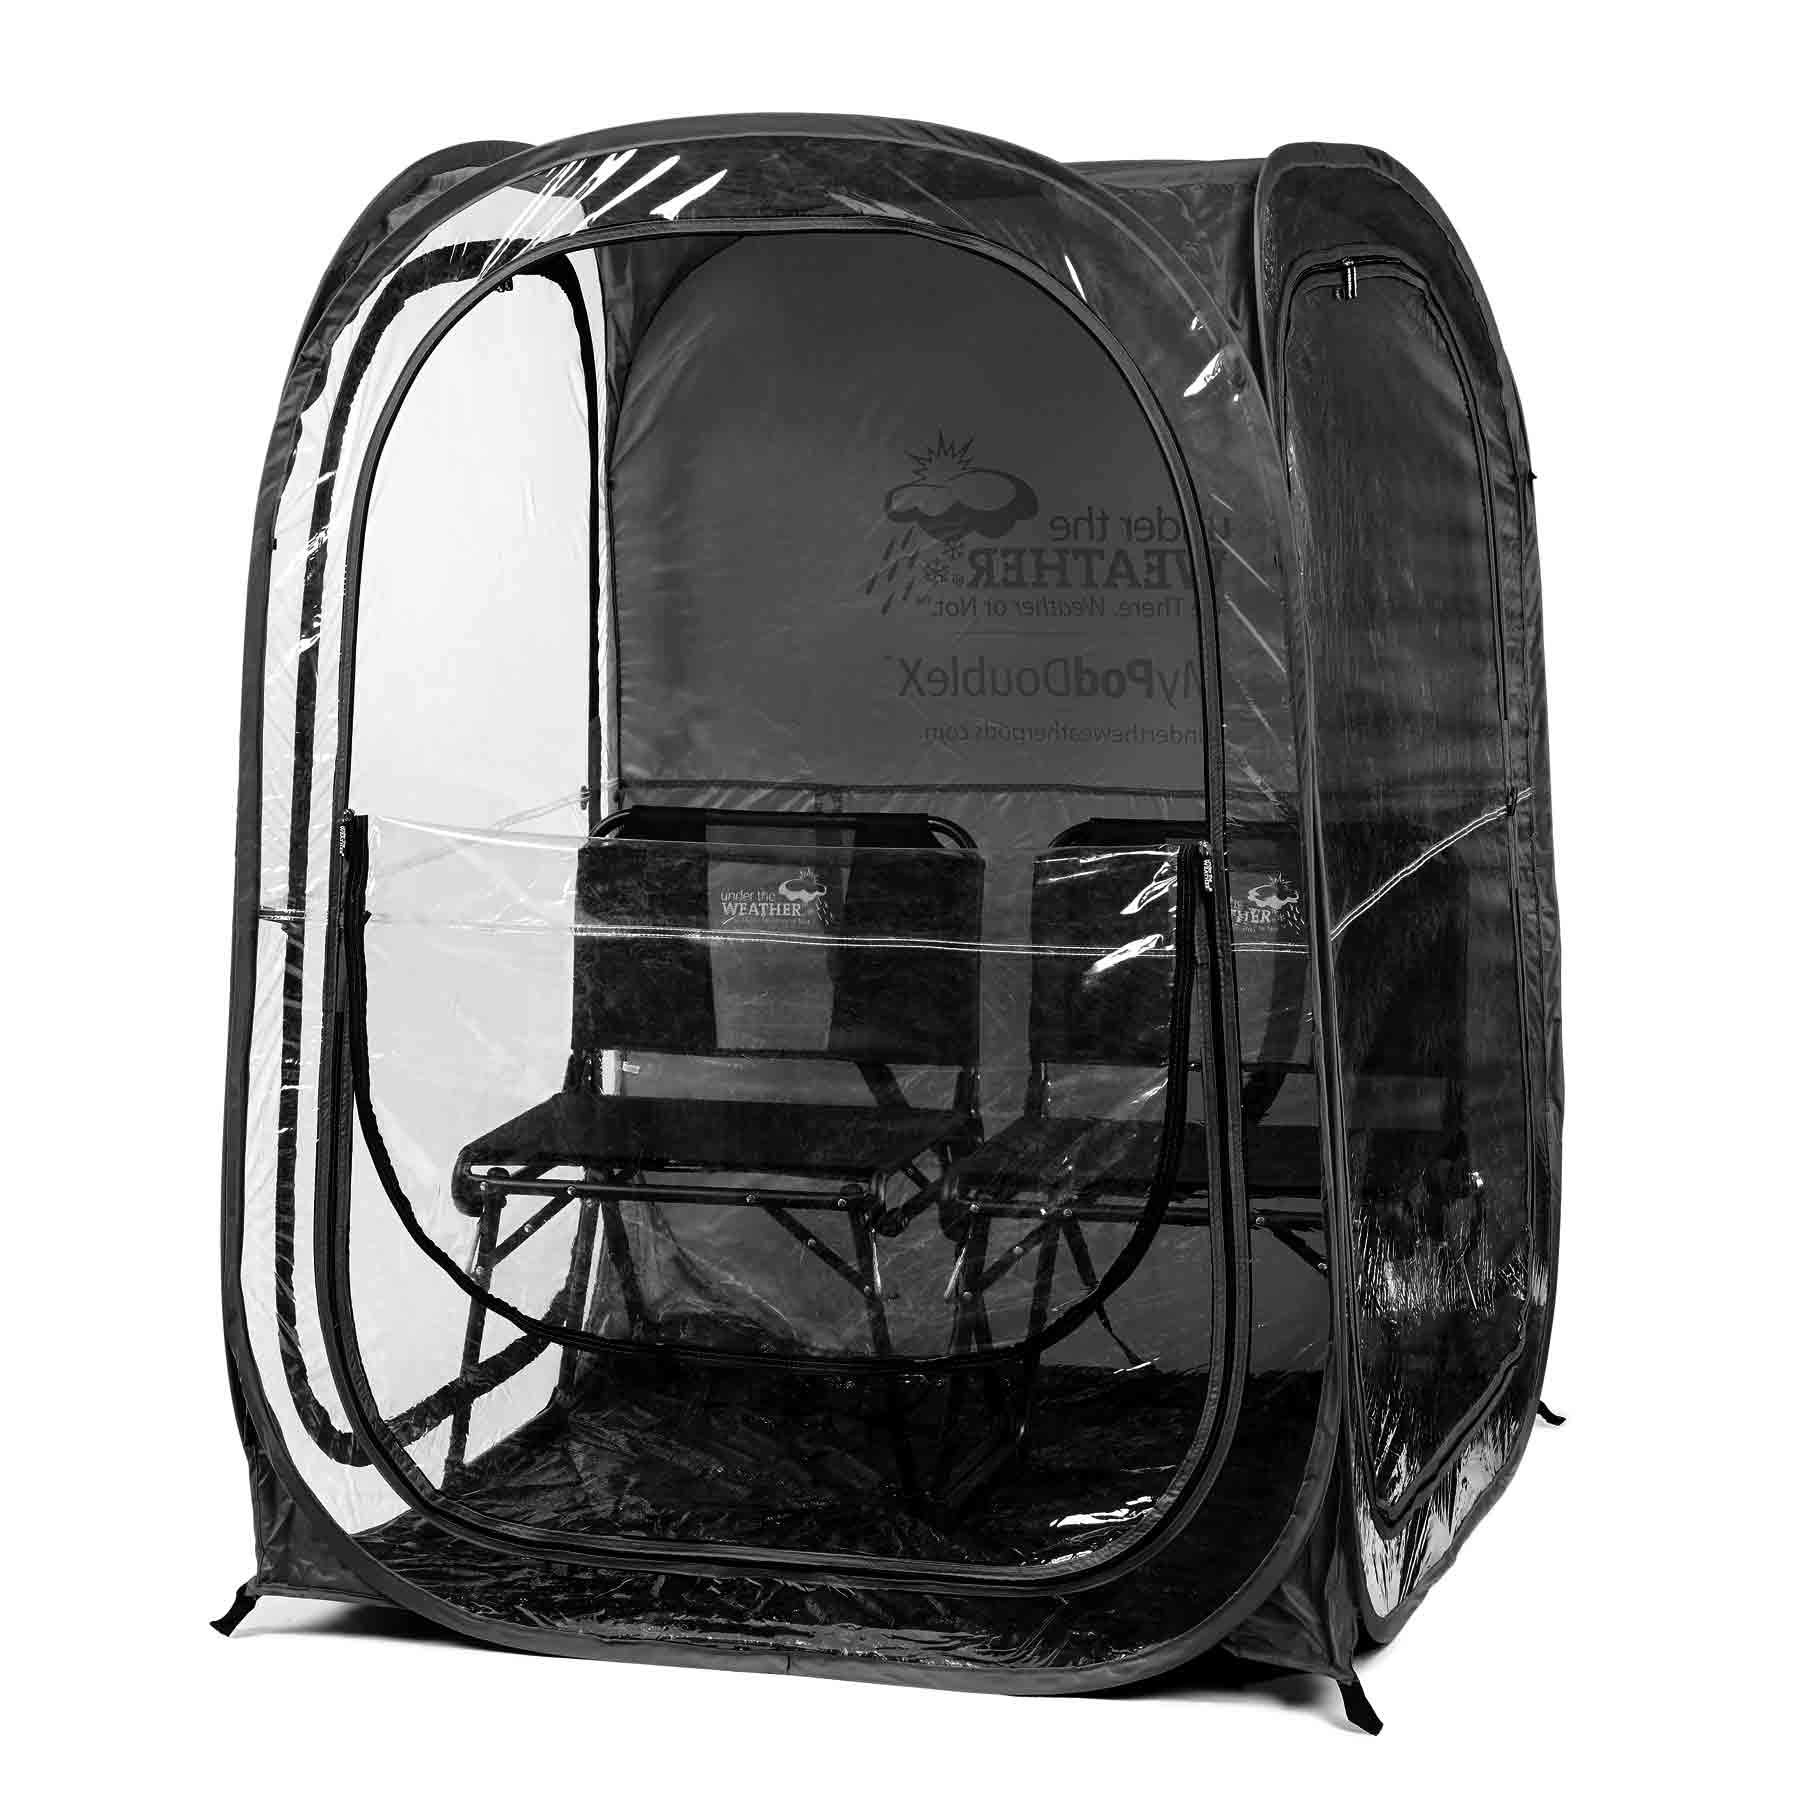 Under the Weather Black MyPodDoubleX 2 Person Pop-up Weather Pod. The Original, Patented WeatherPod by Under the Weather